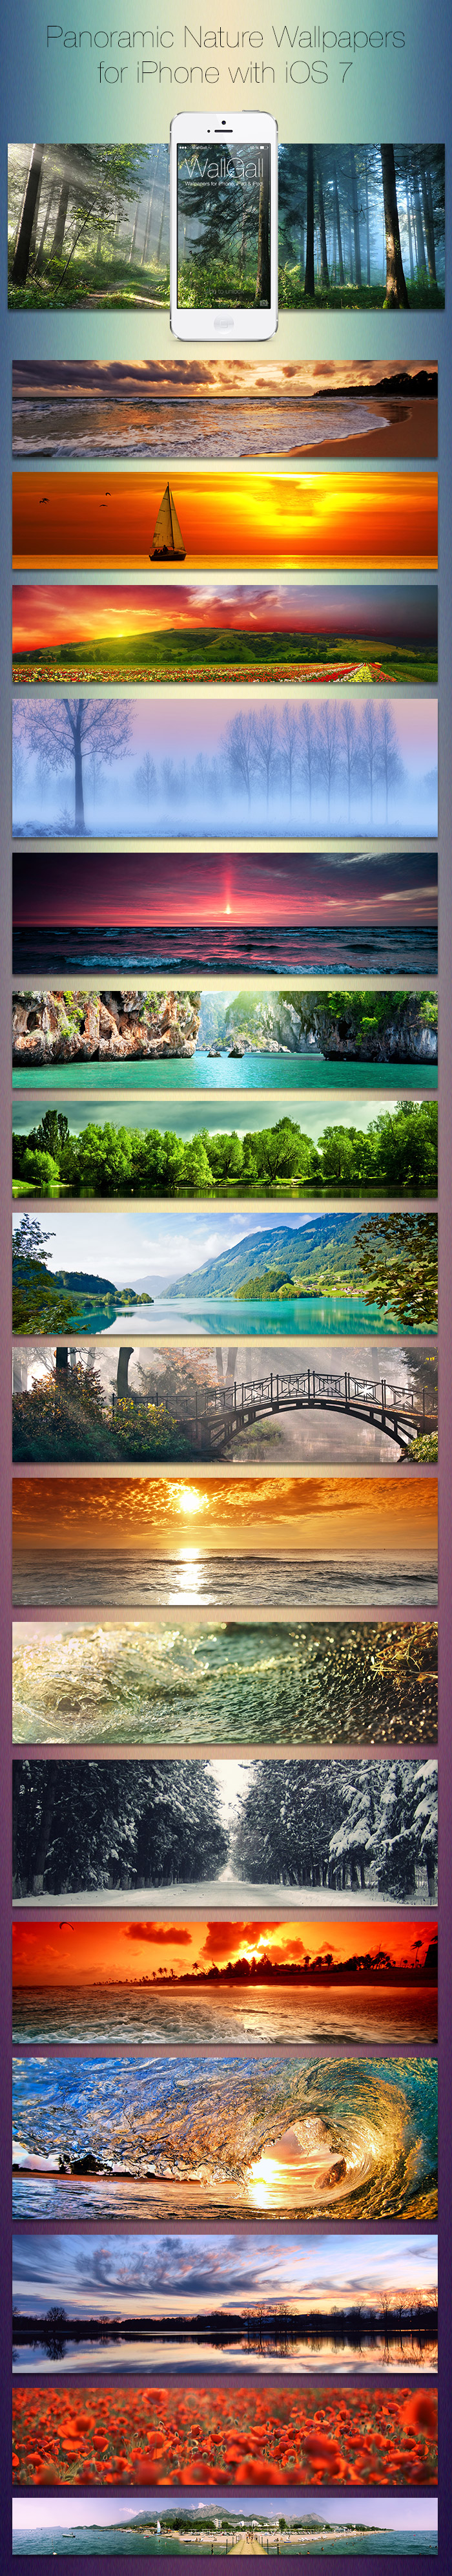 Iphone wallpaper pack tumblr - Iphone Ios 7 Wallpaper Tumblr Ios 7 Panoramic Wallpaper Pack For Iphone Nature By Coldik